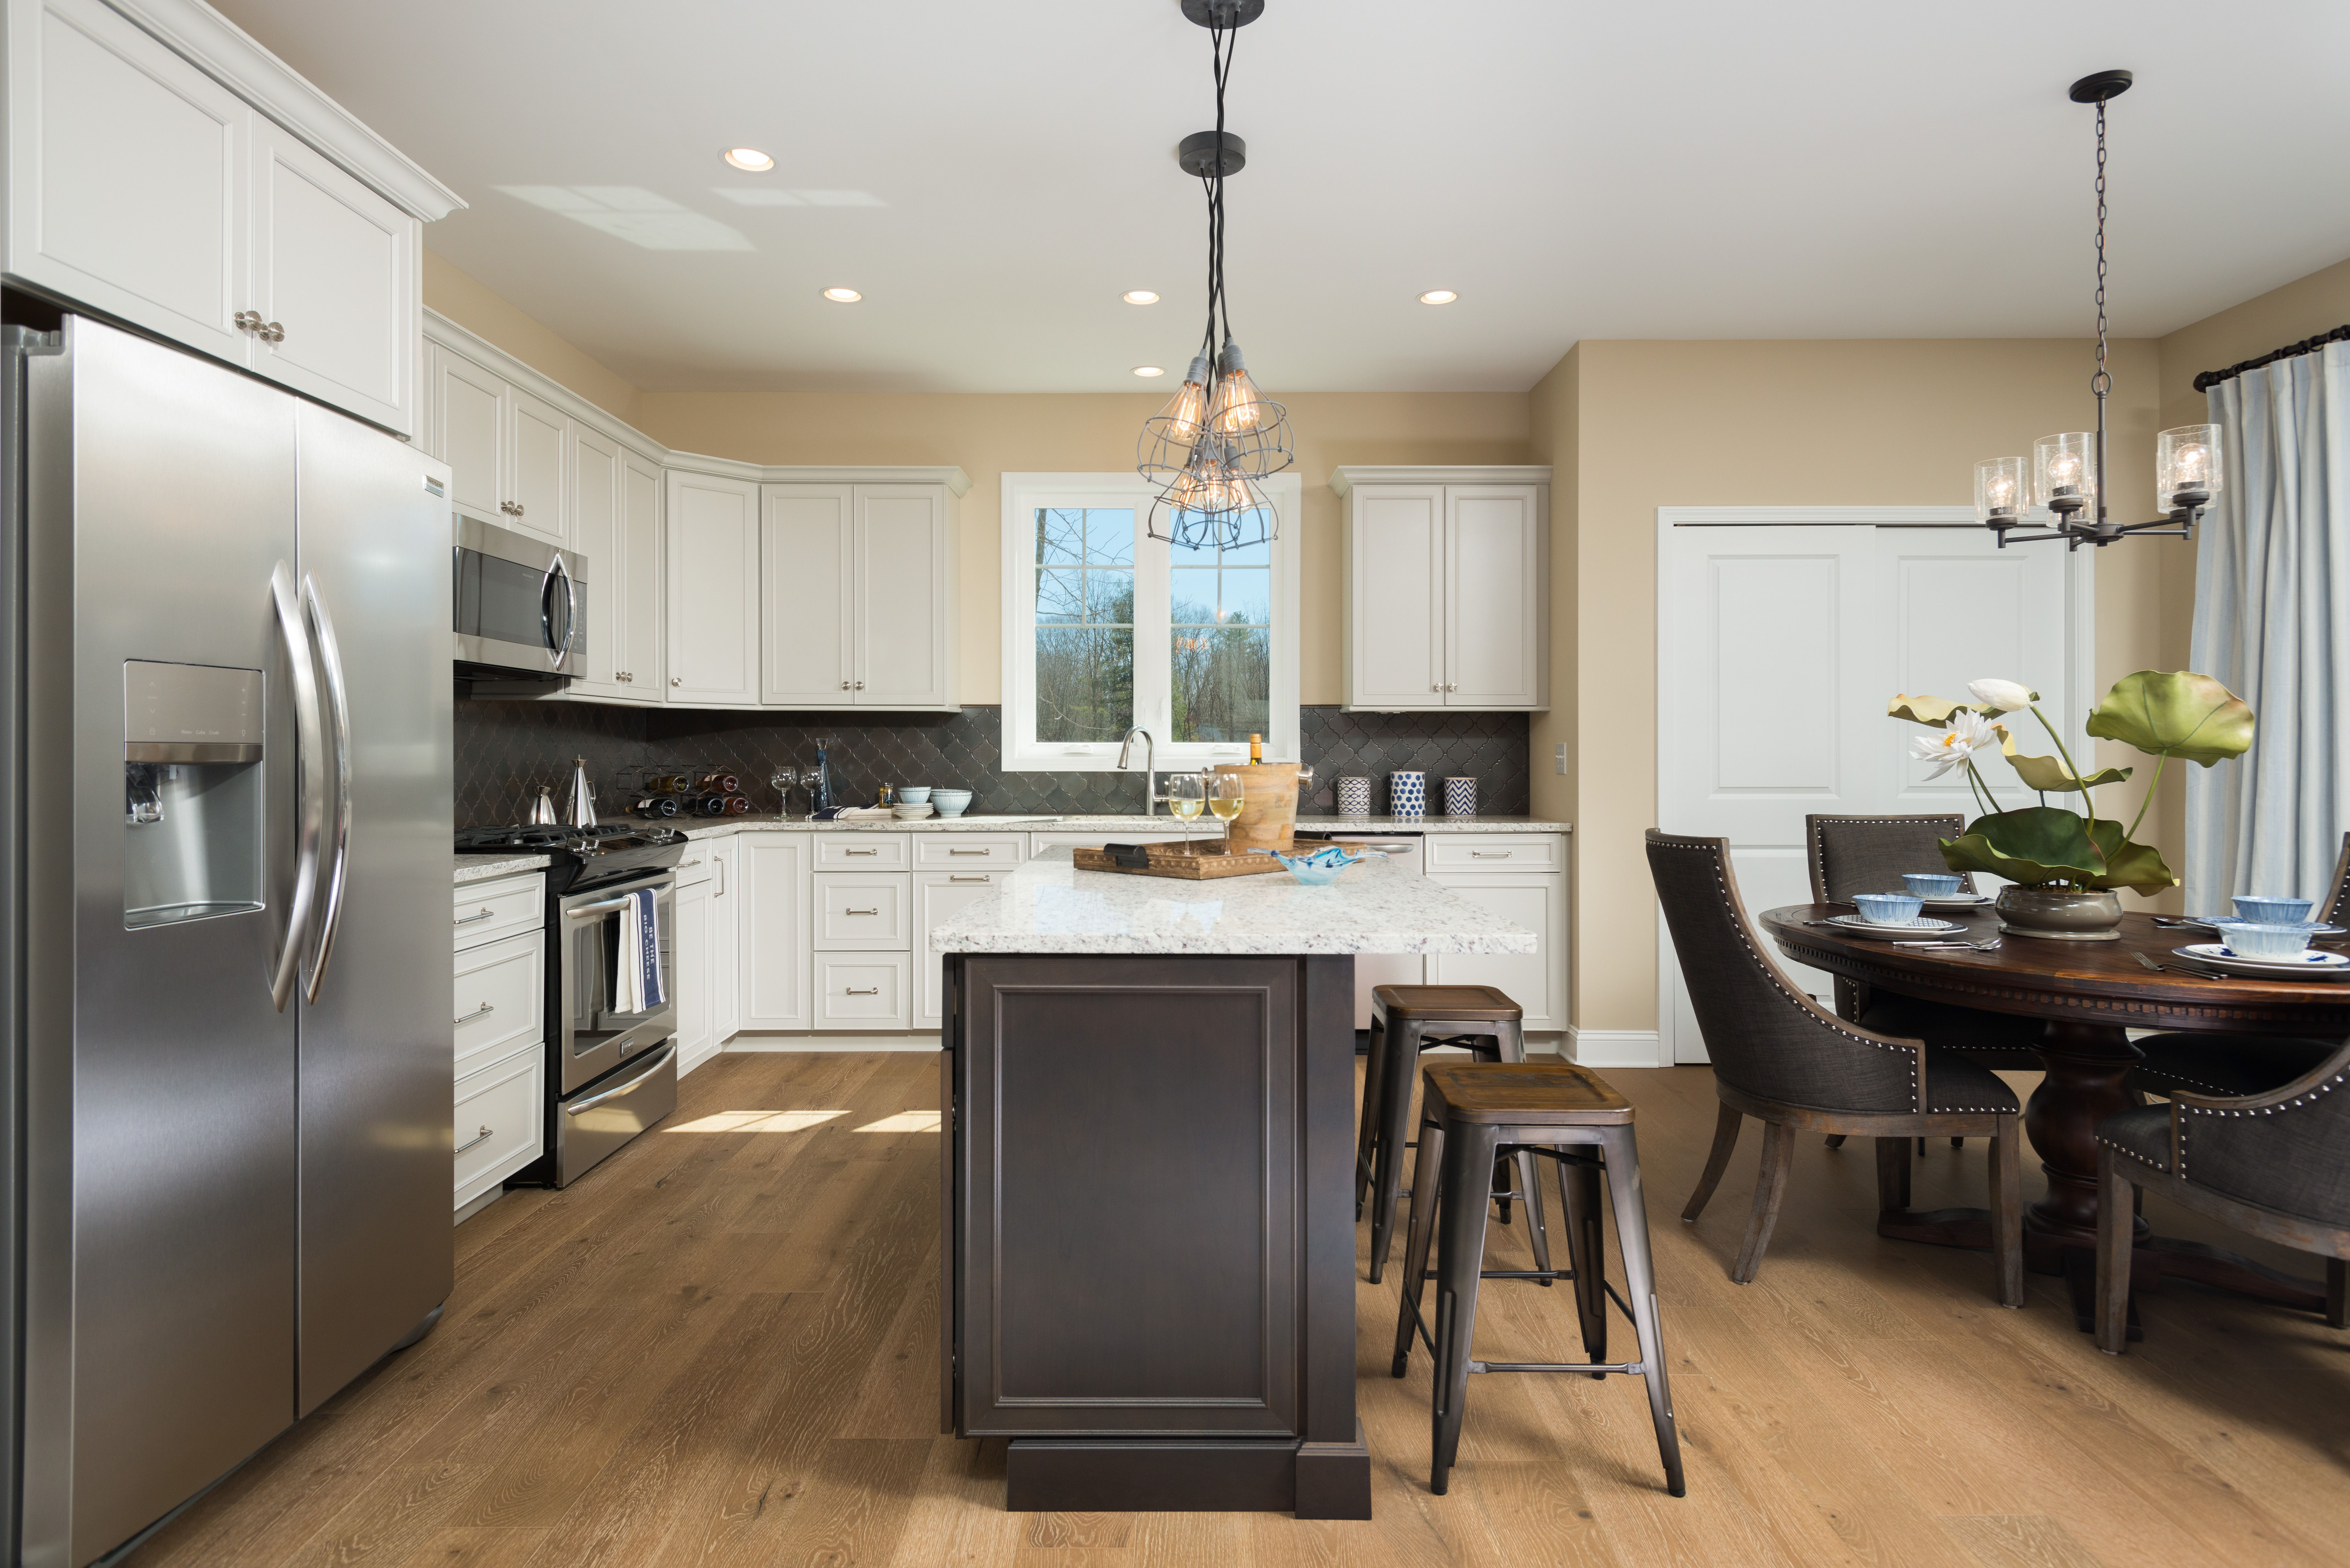 Kitchen featured in the Concord By Belmonte Builders in Albany-Saratoga, NY